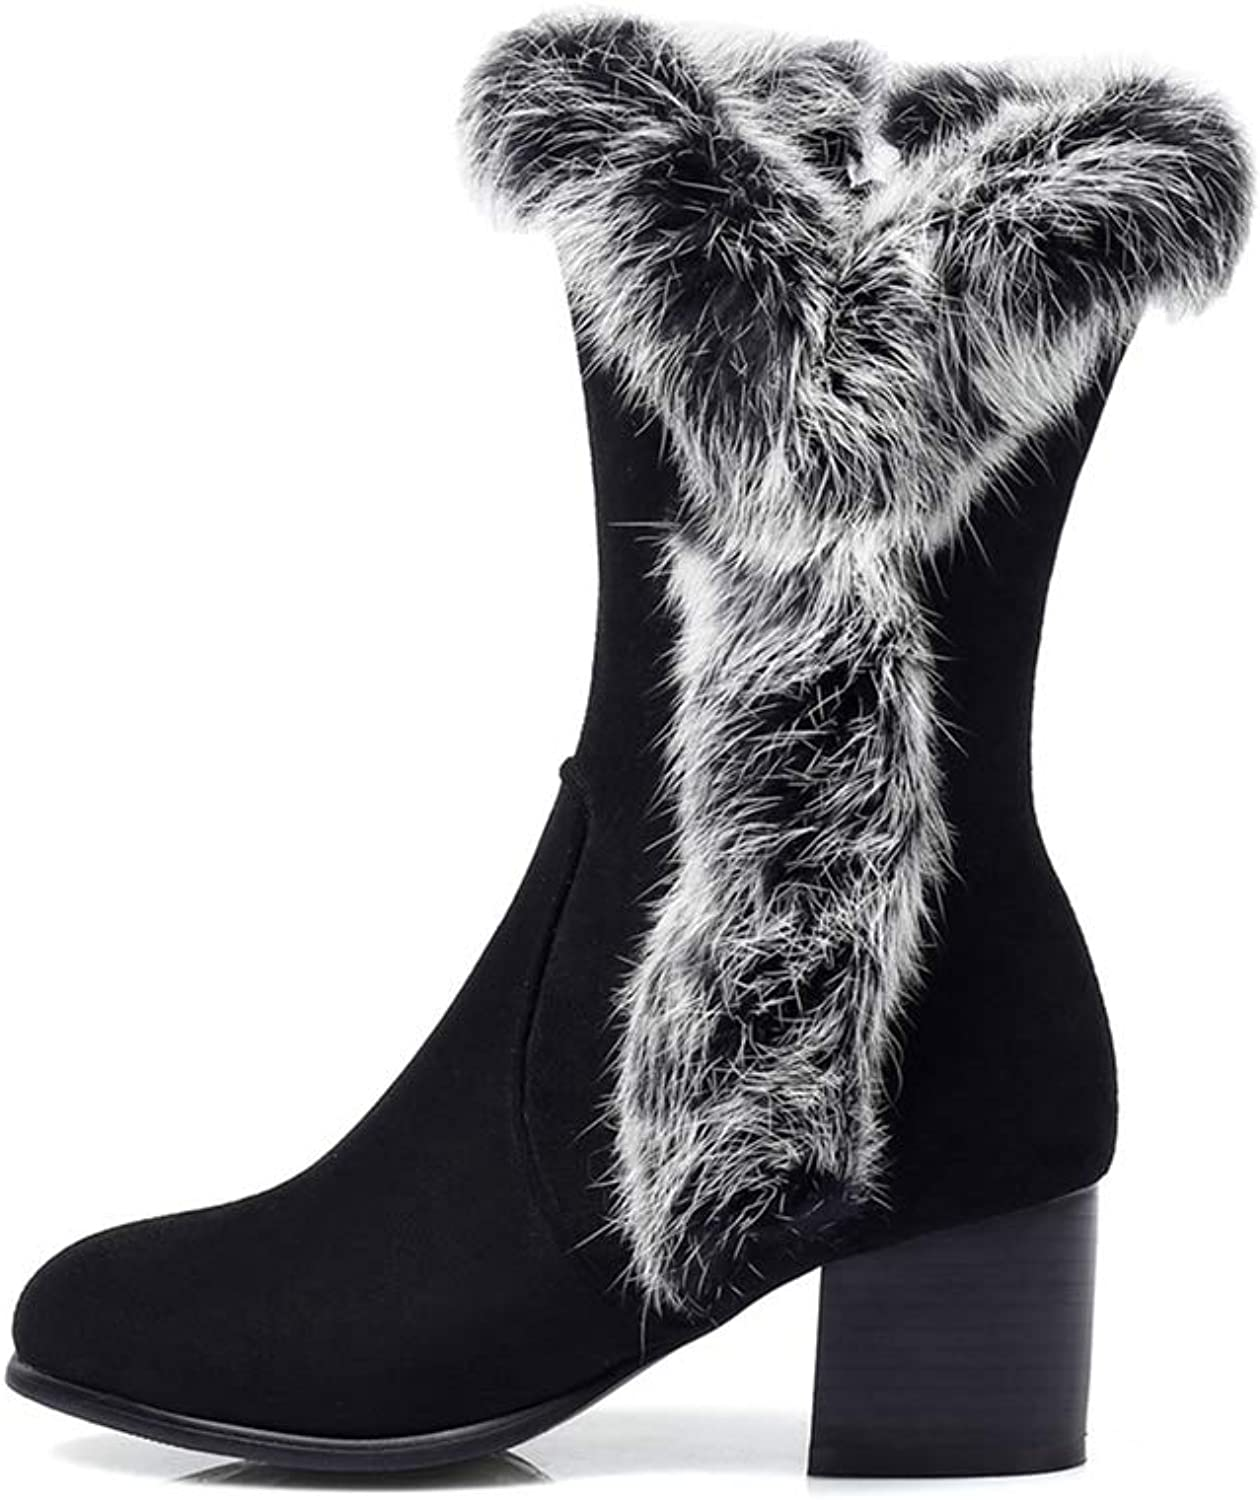 T-JULY Winter Mid Calf Boots for Women Faux Fur Leisure shoes Female Zipper Square Heel Big Size Boots